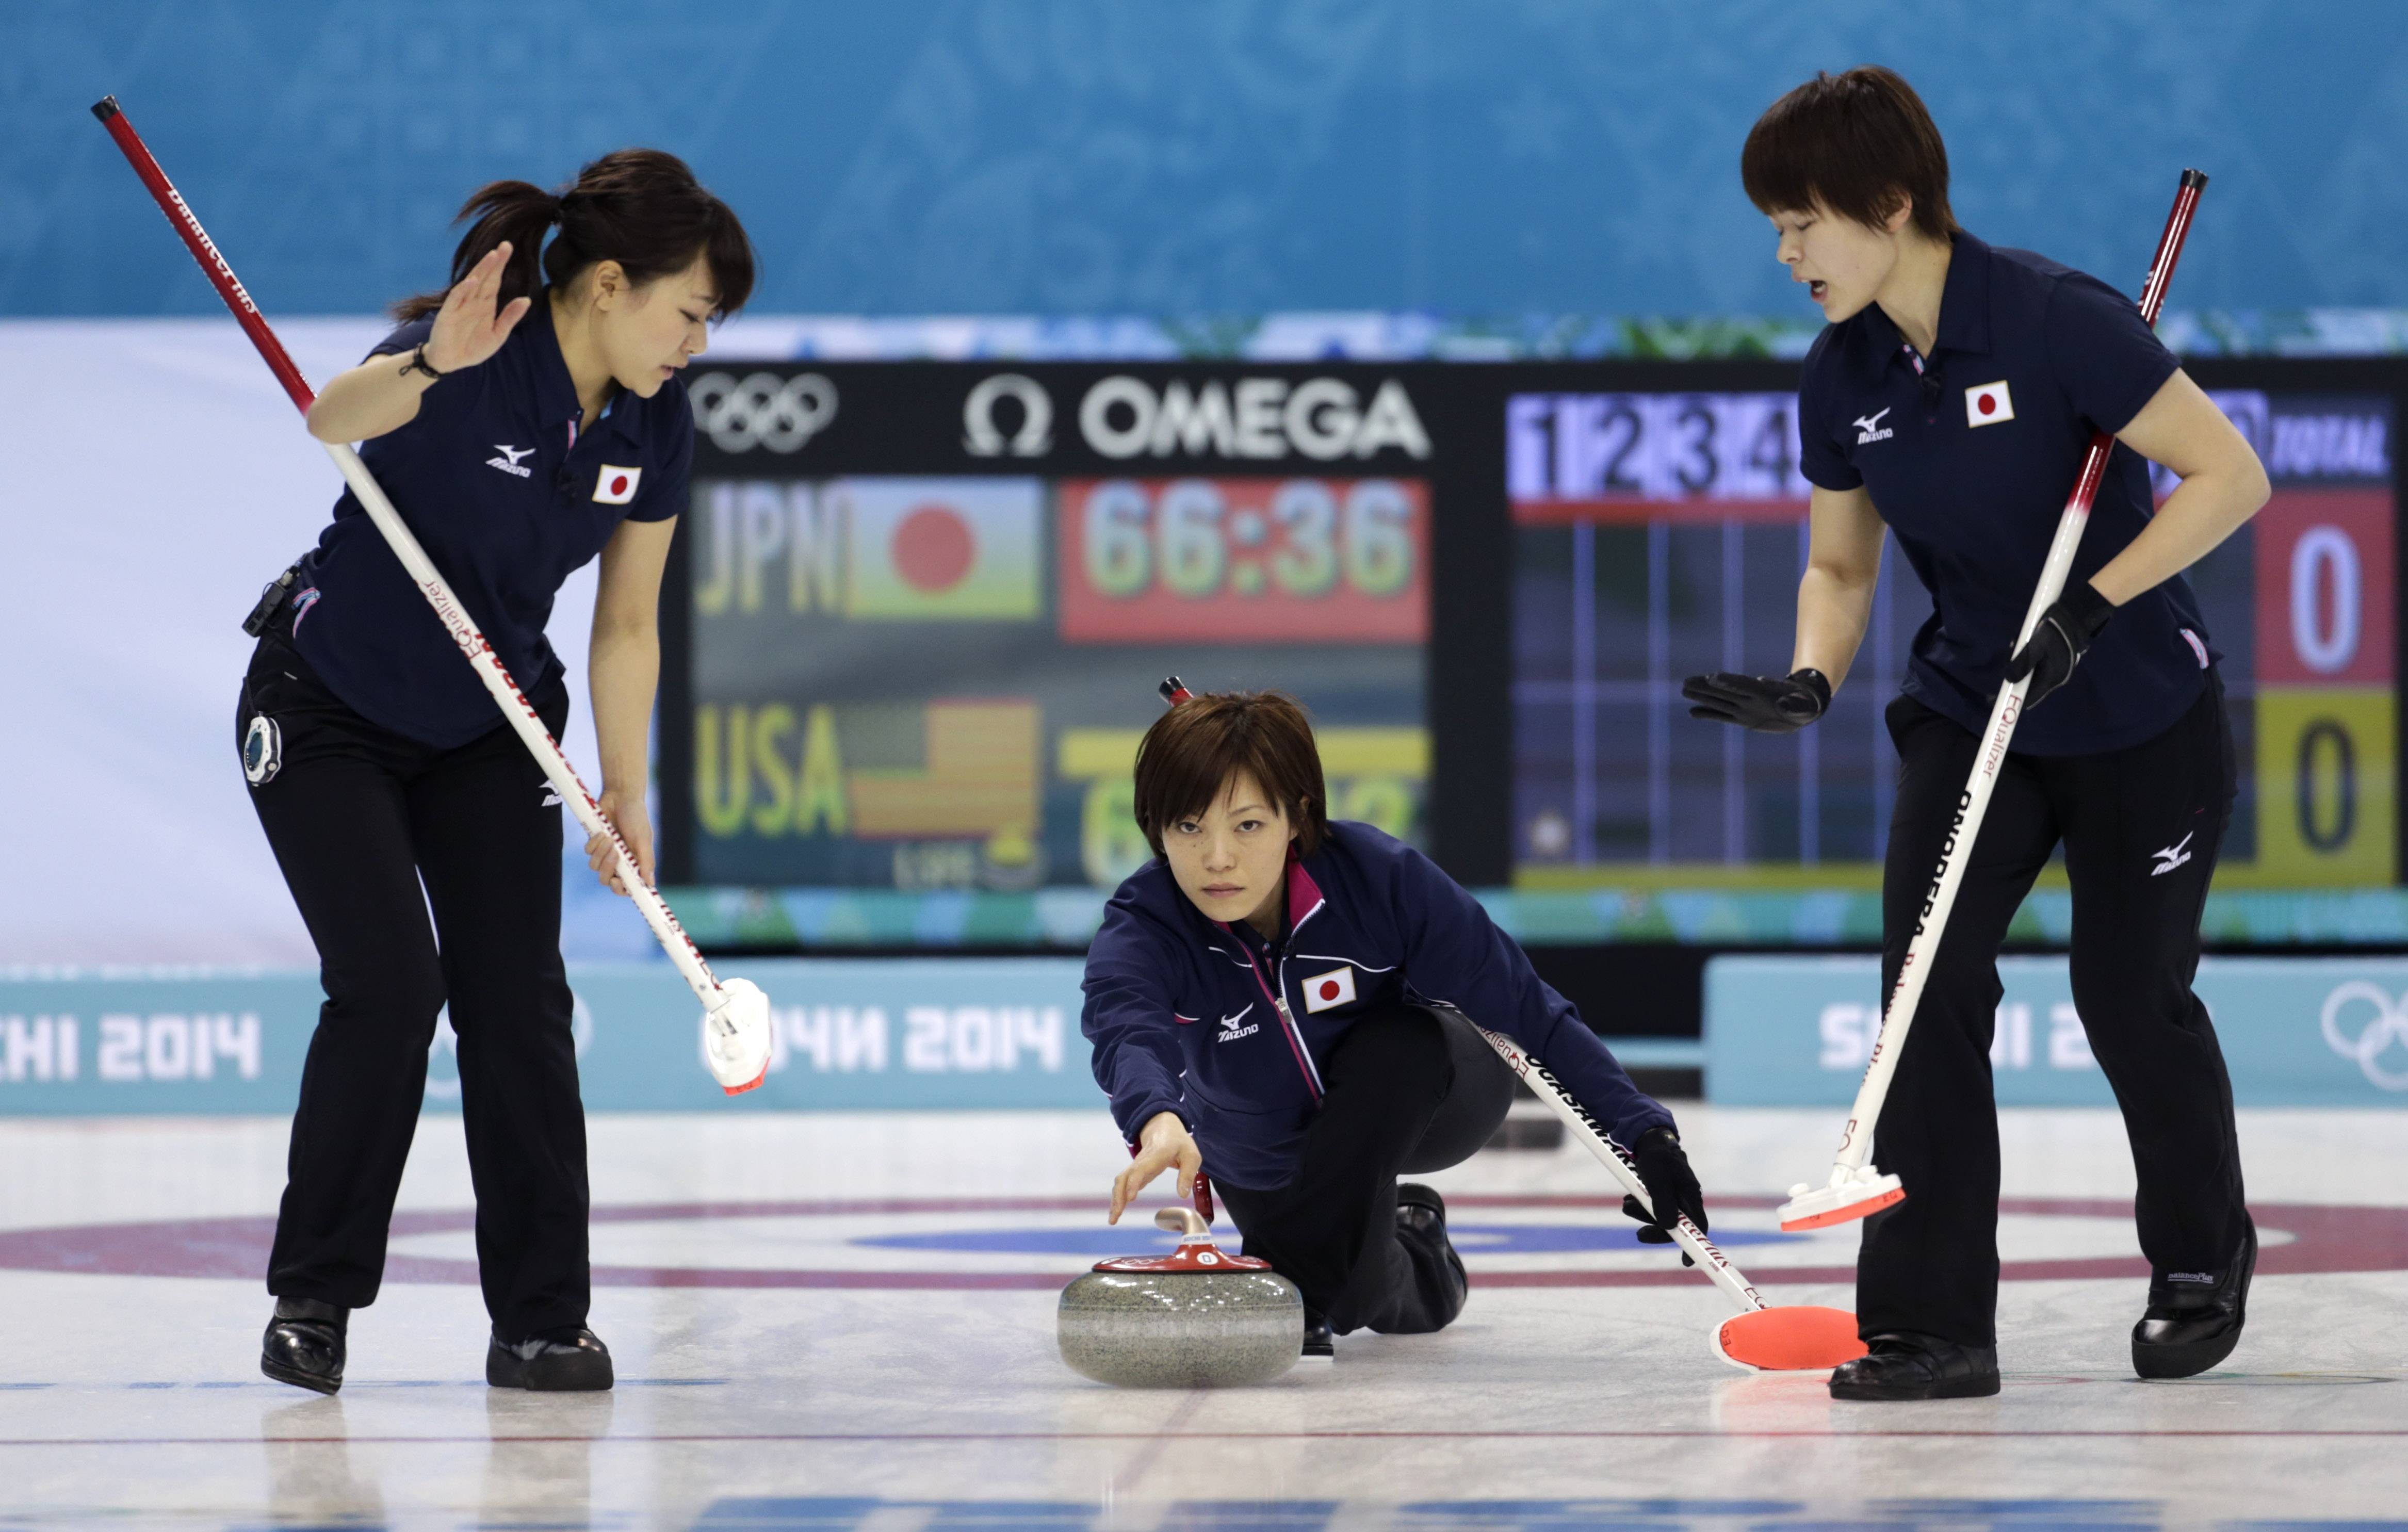 Japan's skip skip Ayumi Ogasawara, center, delivers the rock to sweepers Chinami Yoshida, left, and Kaho Onodera during women's curling competition against the United States.